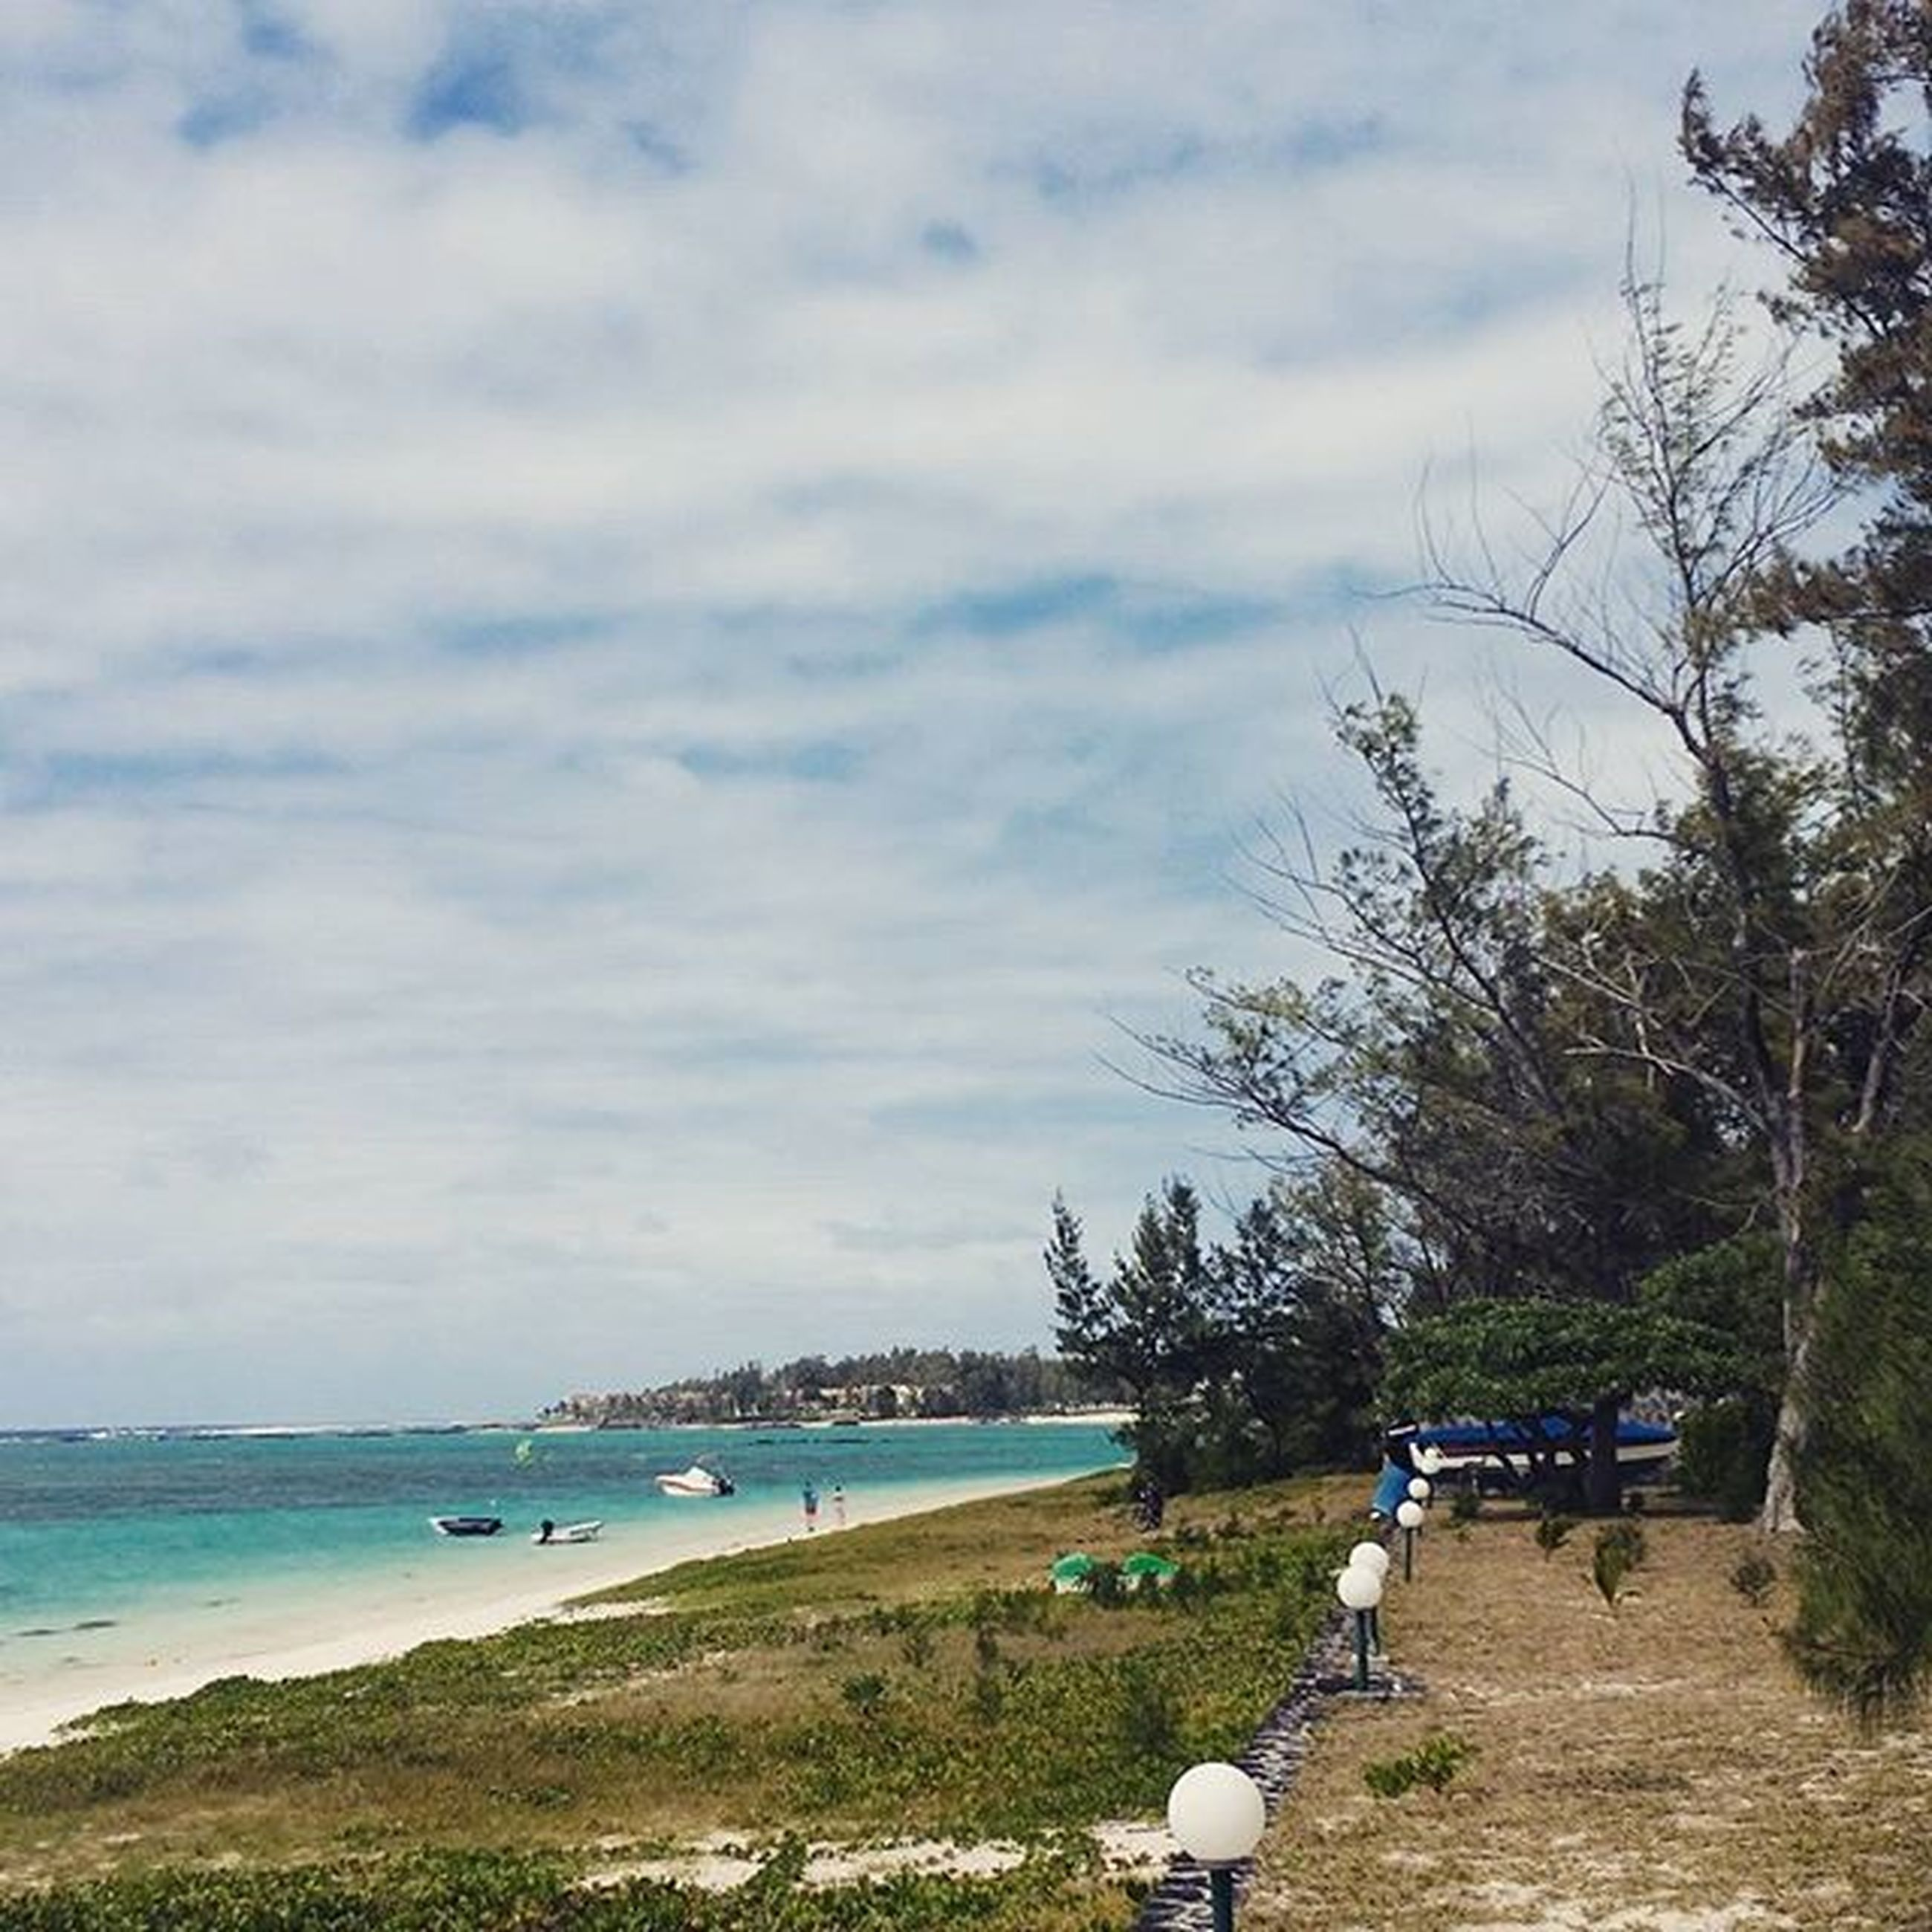 sky, water, sea, beach, cloud - sky, tree, tranquility, shore, tranquil scene, scenics, nature, cloud, beauty in nature, cloudy, sand, horizon over water, incidental people, day, outdoors, coastline